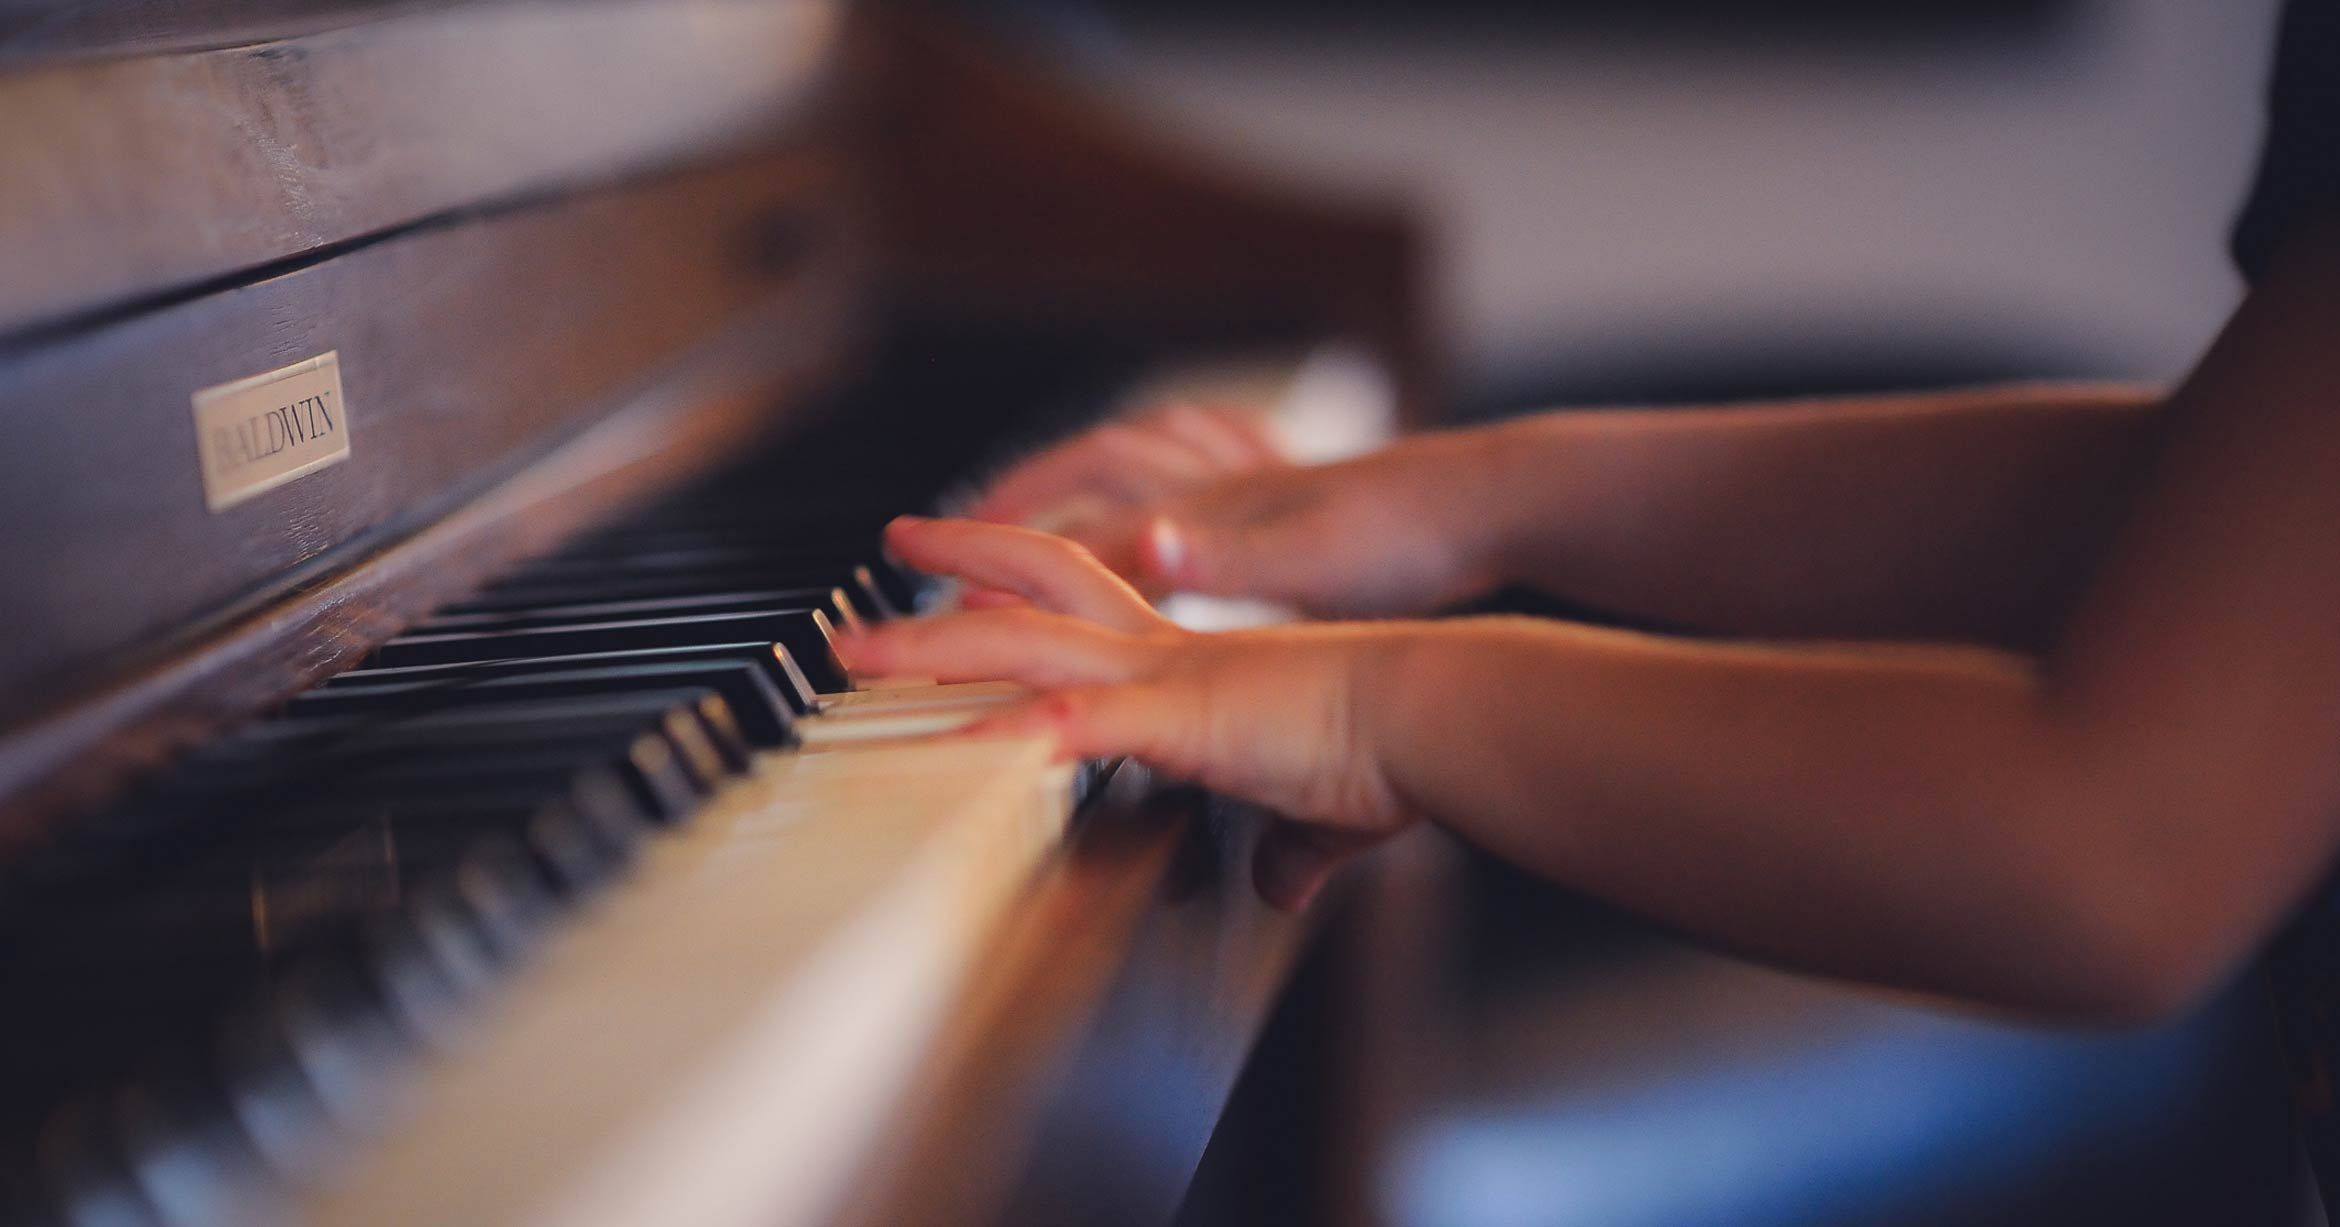 Hands of a child practicing on a piano keyboard